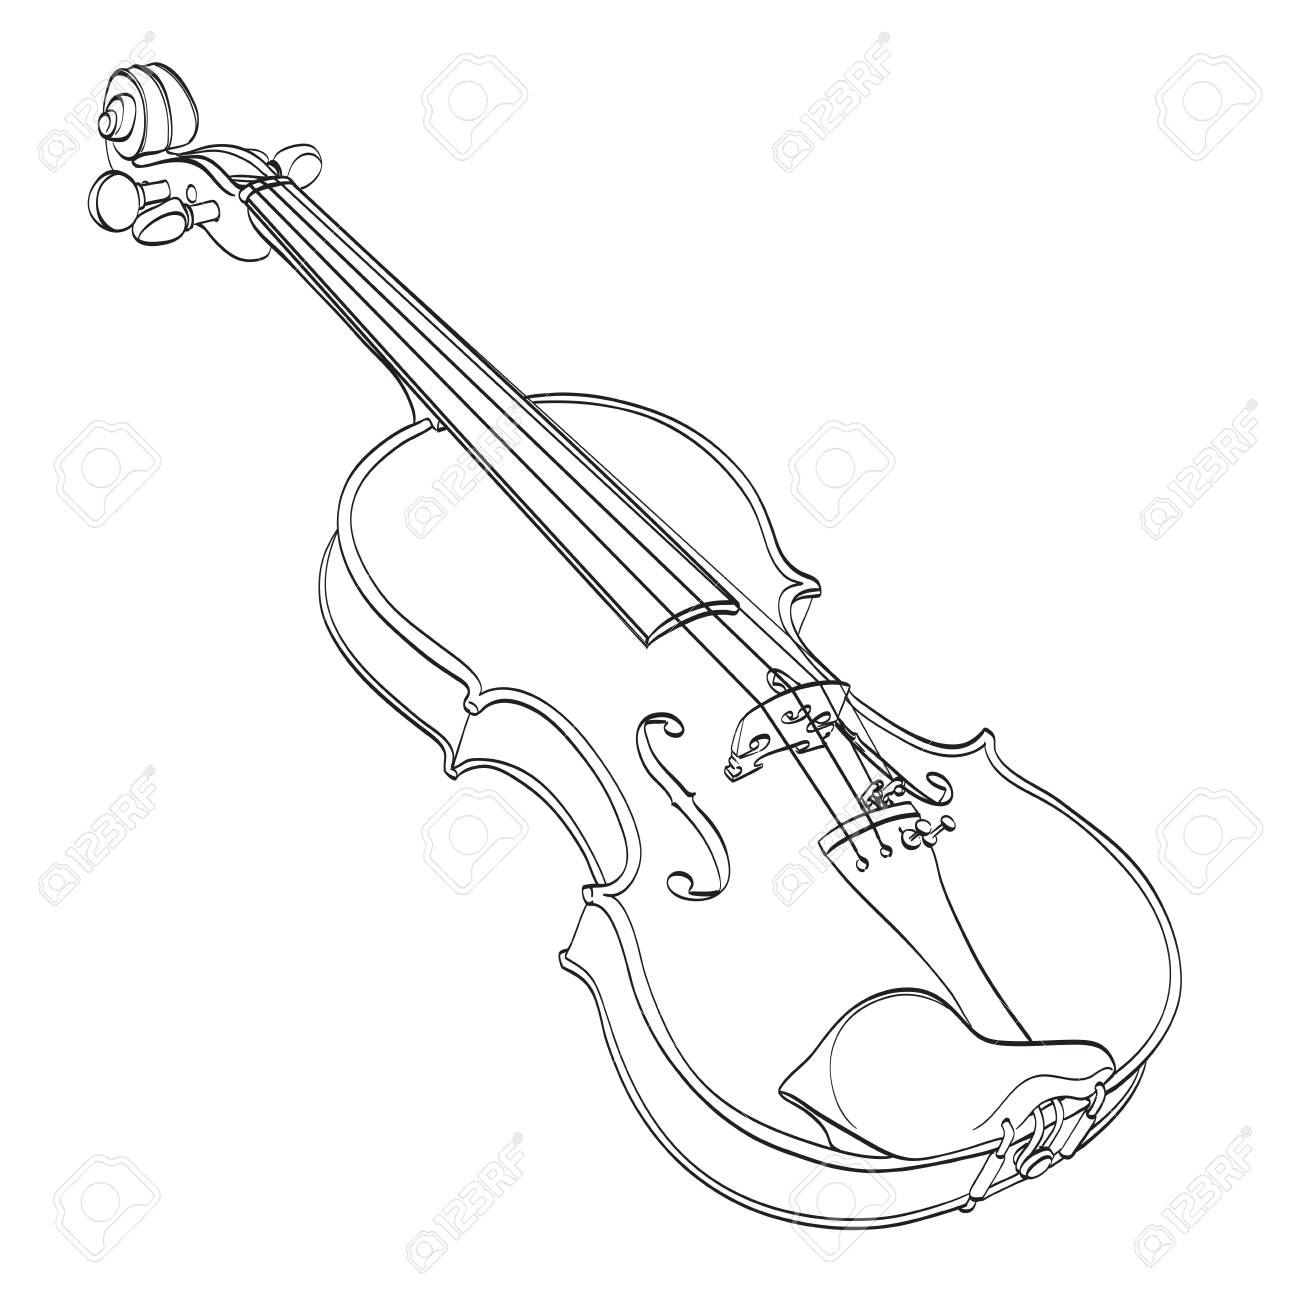 Violin Outline Drawing On White Hand Drawn Contour Line Of Wooden